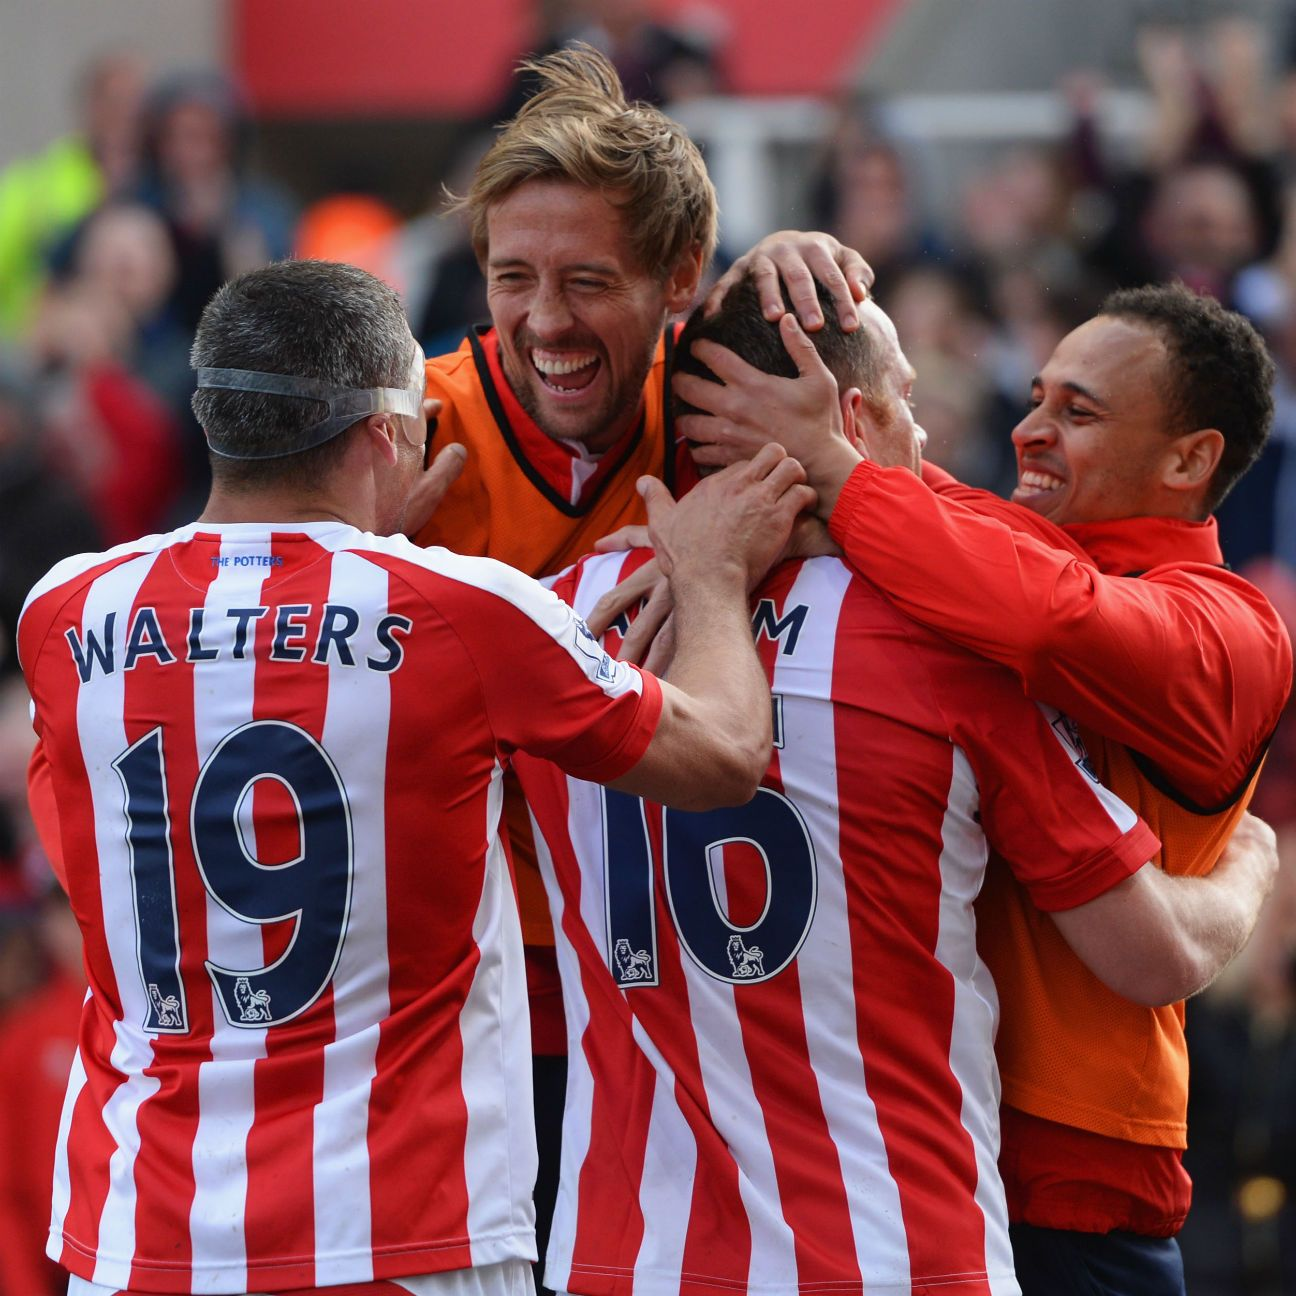 After Sunday, the good times at Stoke will be put on hold until August.